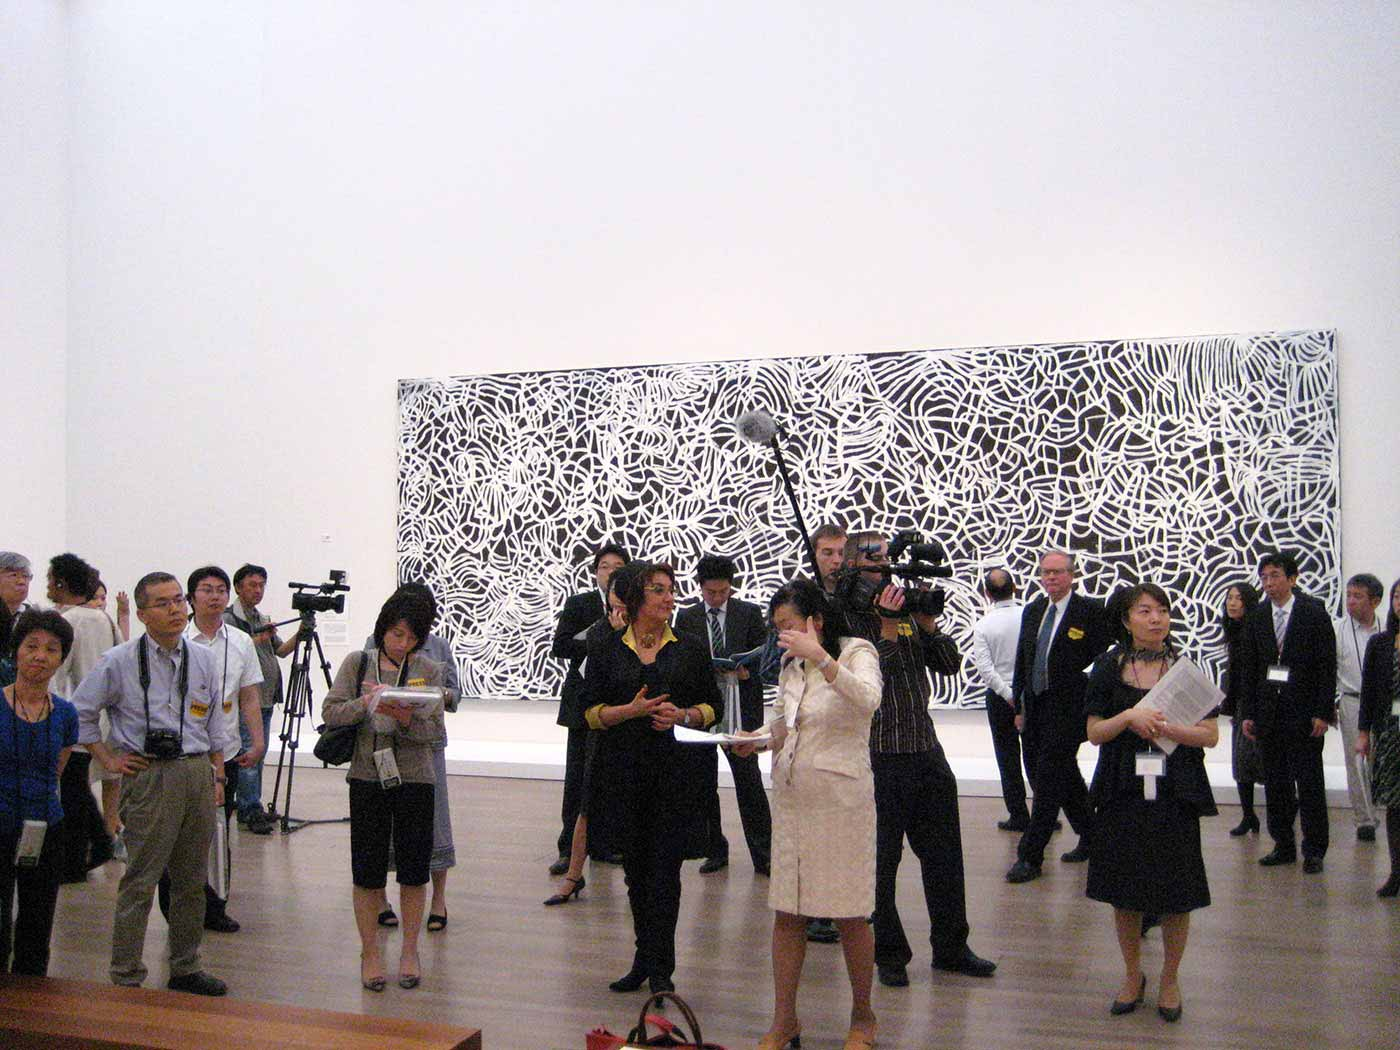 Media standing in an exhibition space with a large painting in the background. - click to view larger image